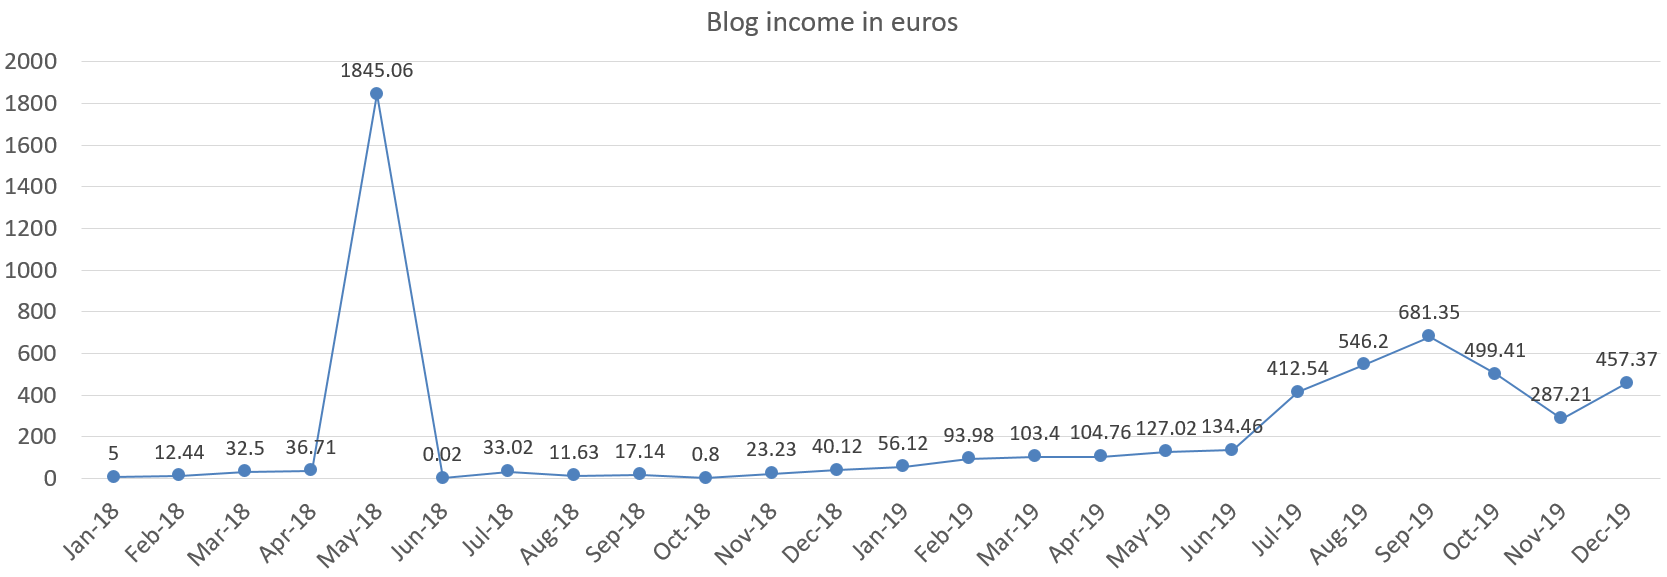 Financefreedom blog income in euros december 2019